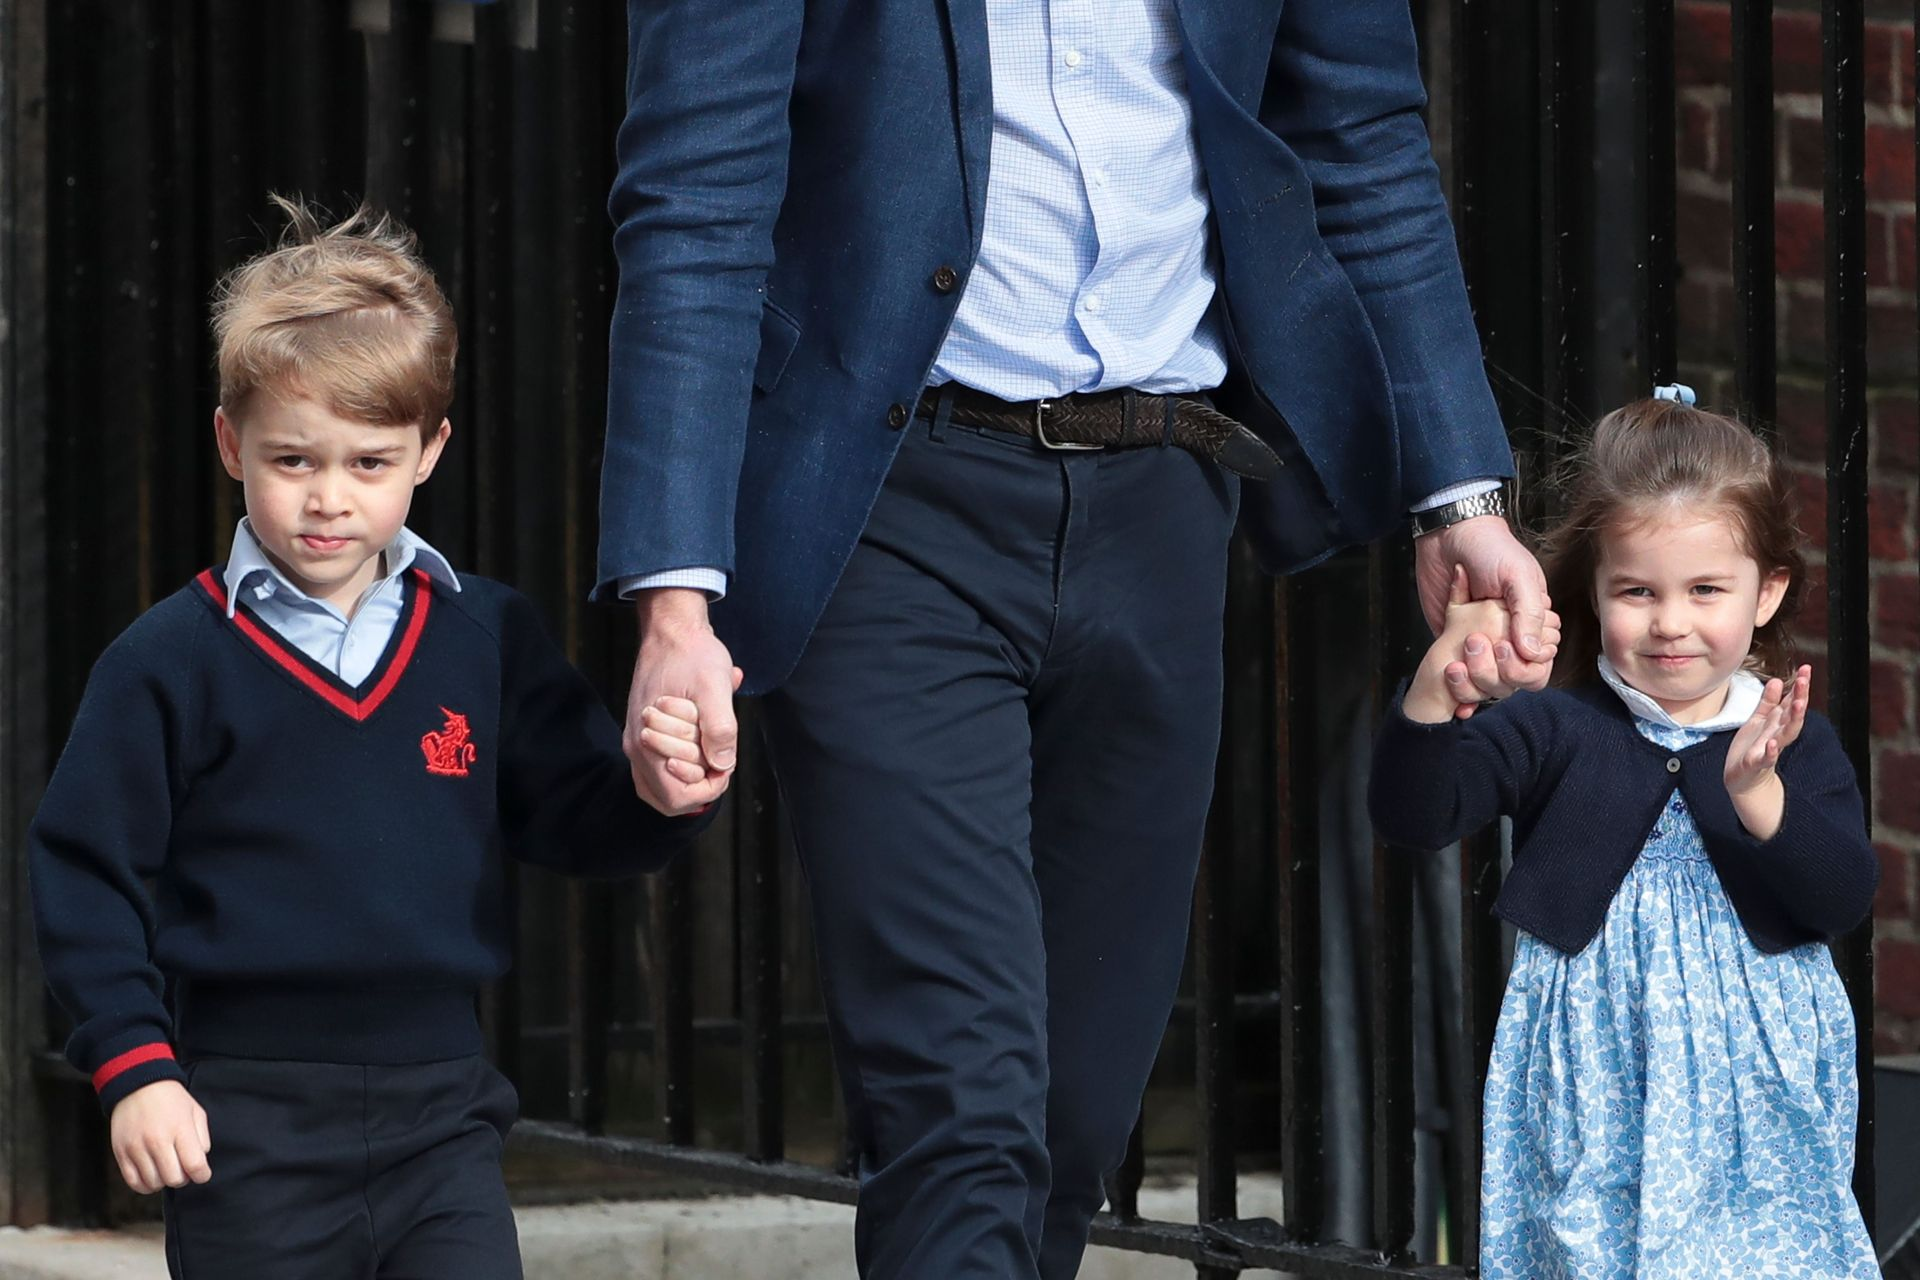 Prince George and Princess Charlotte visiting their new sibling is the cutest thing you will see today